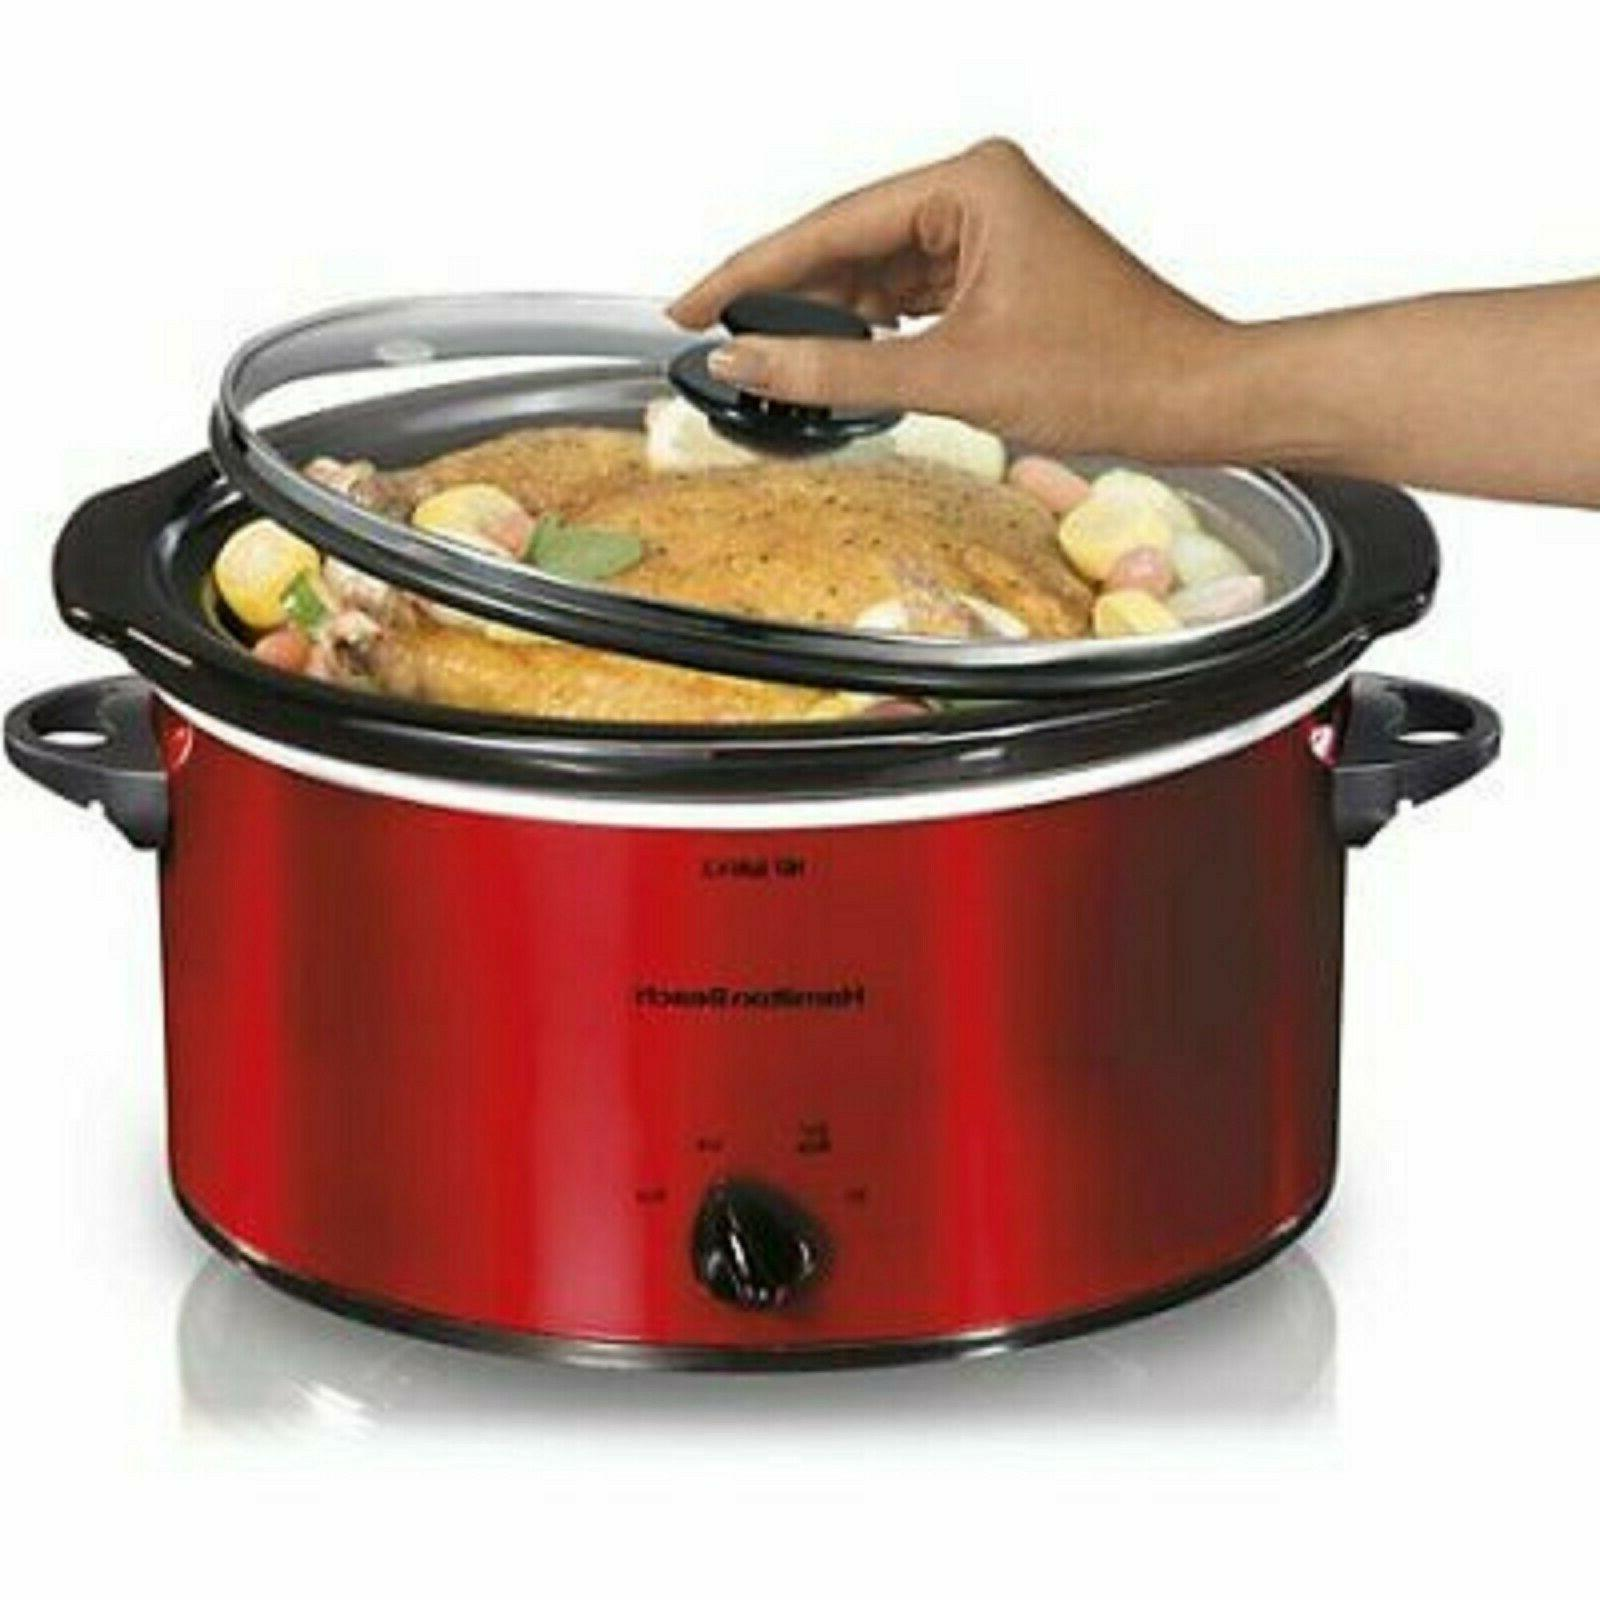 5 quart portable slow cooker red crock